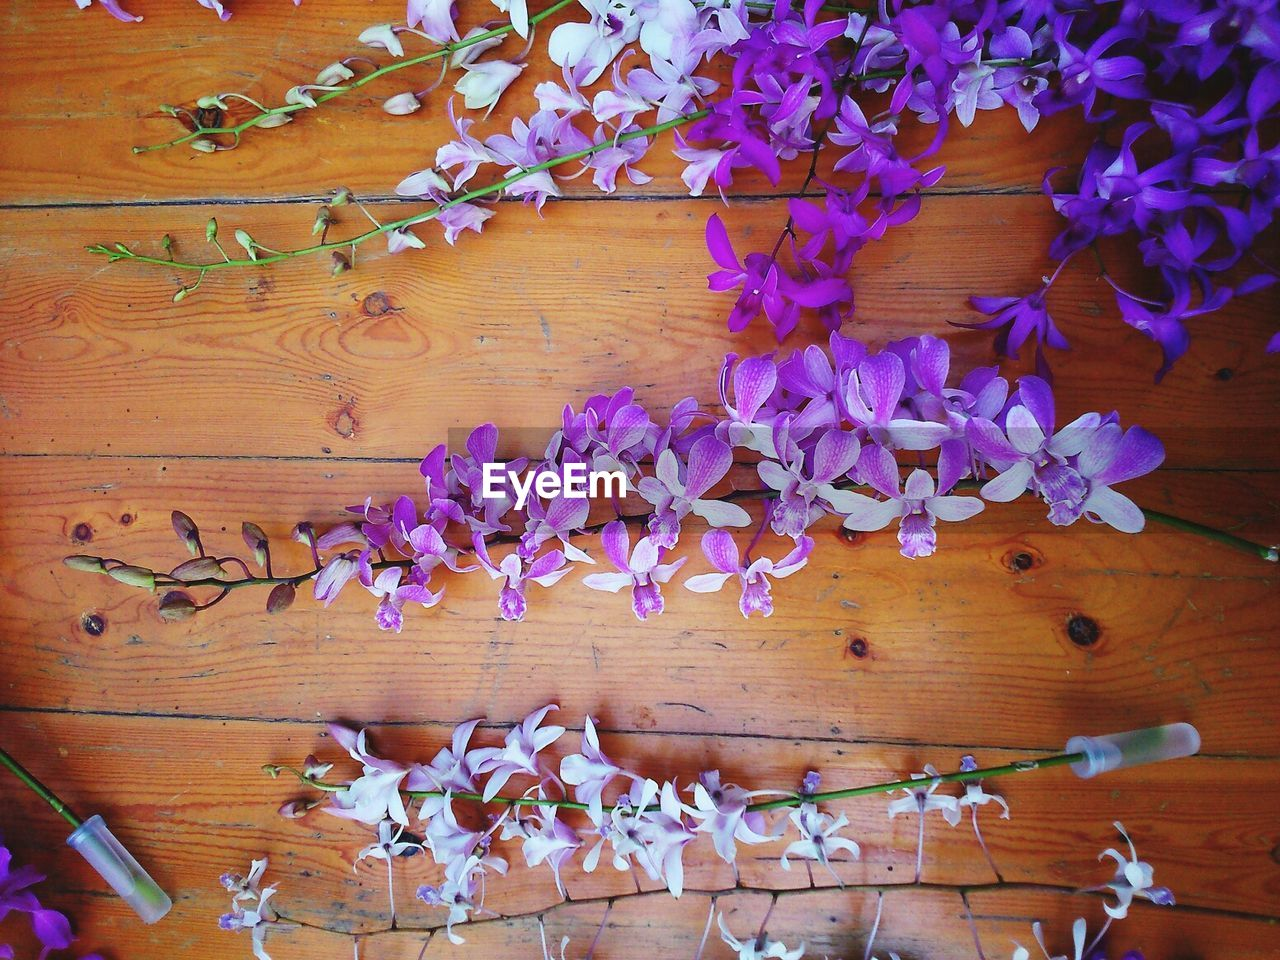 Close-up overhead view of flowers on wooden table